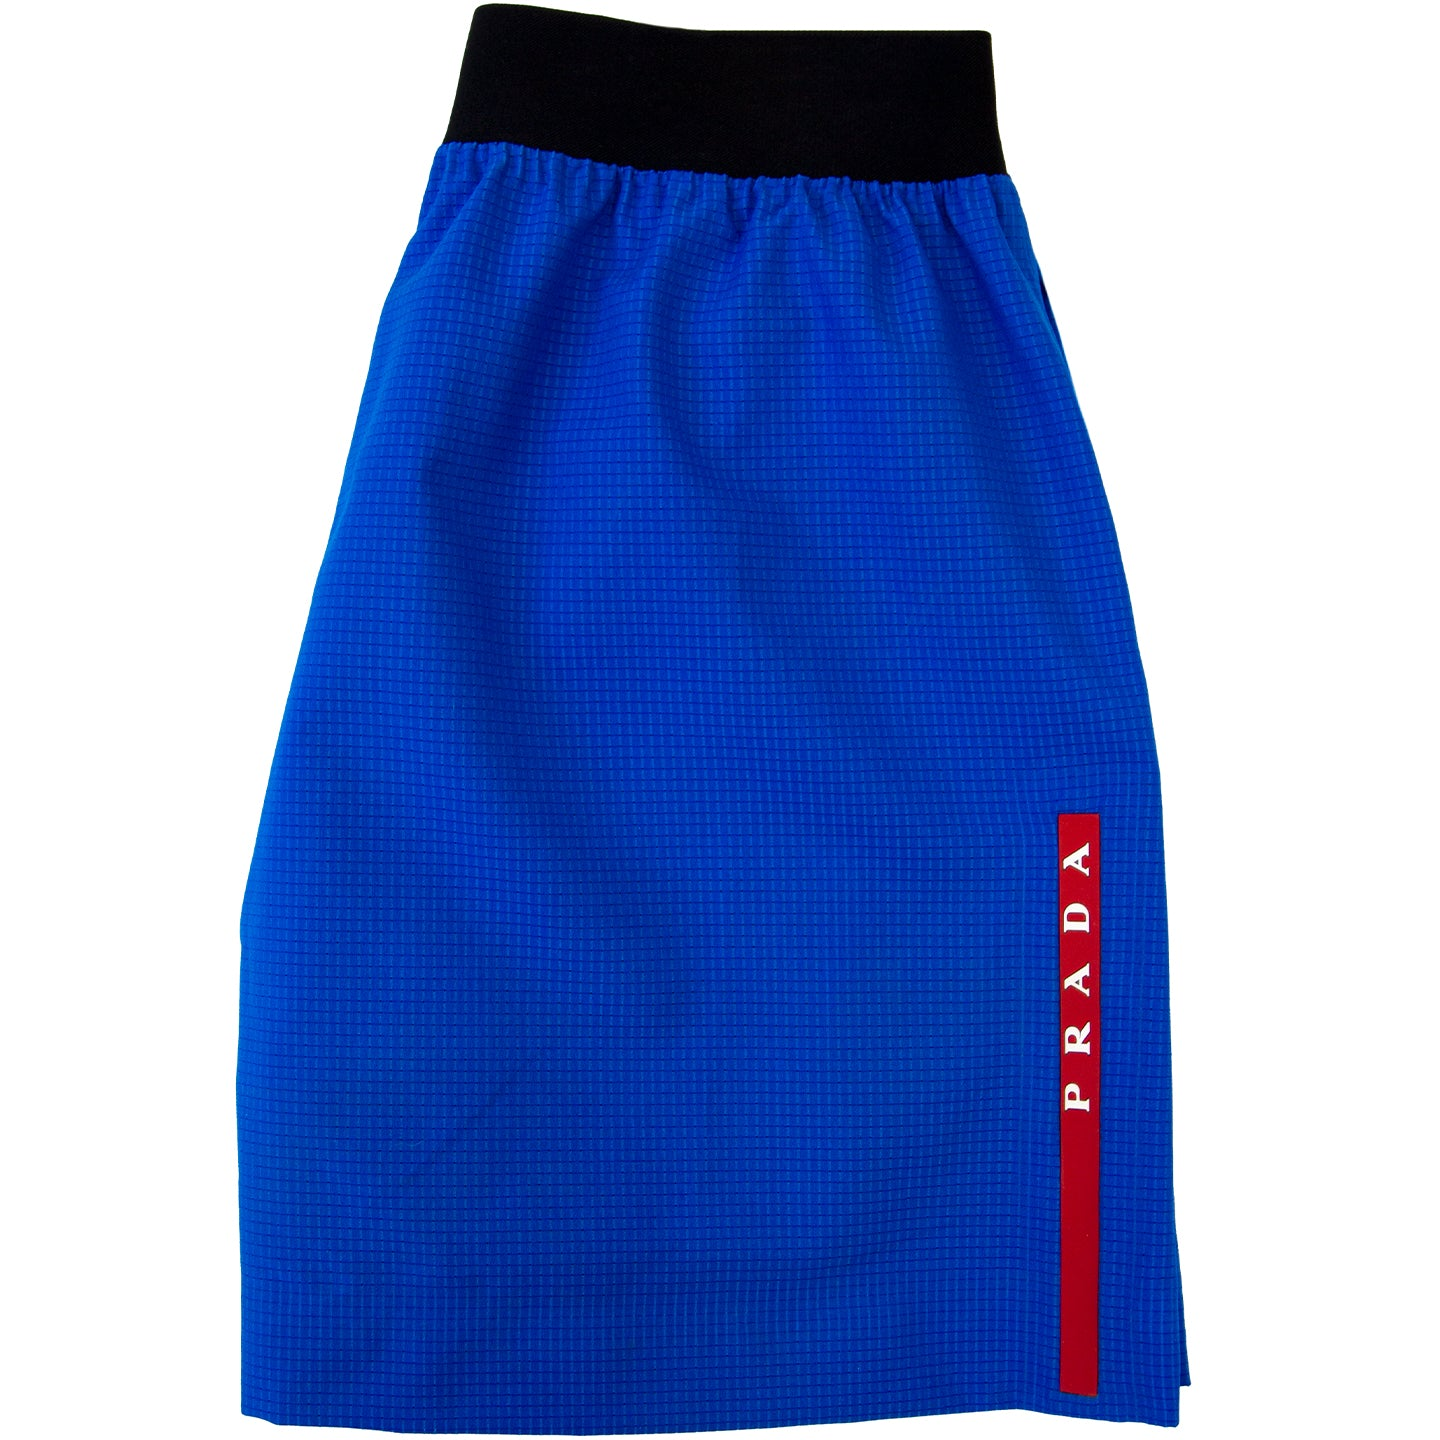 PRADA LIGHT BI-STRETCH SHORT